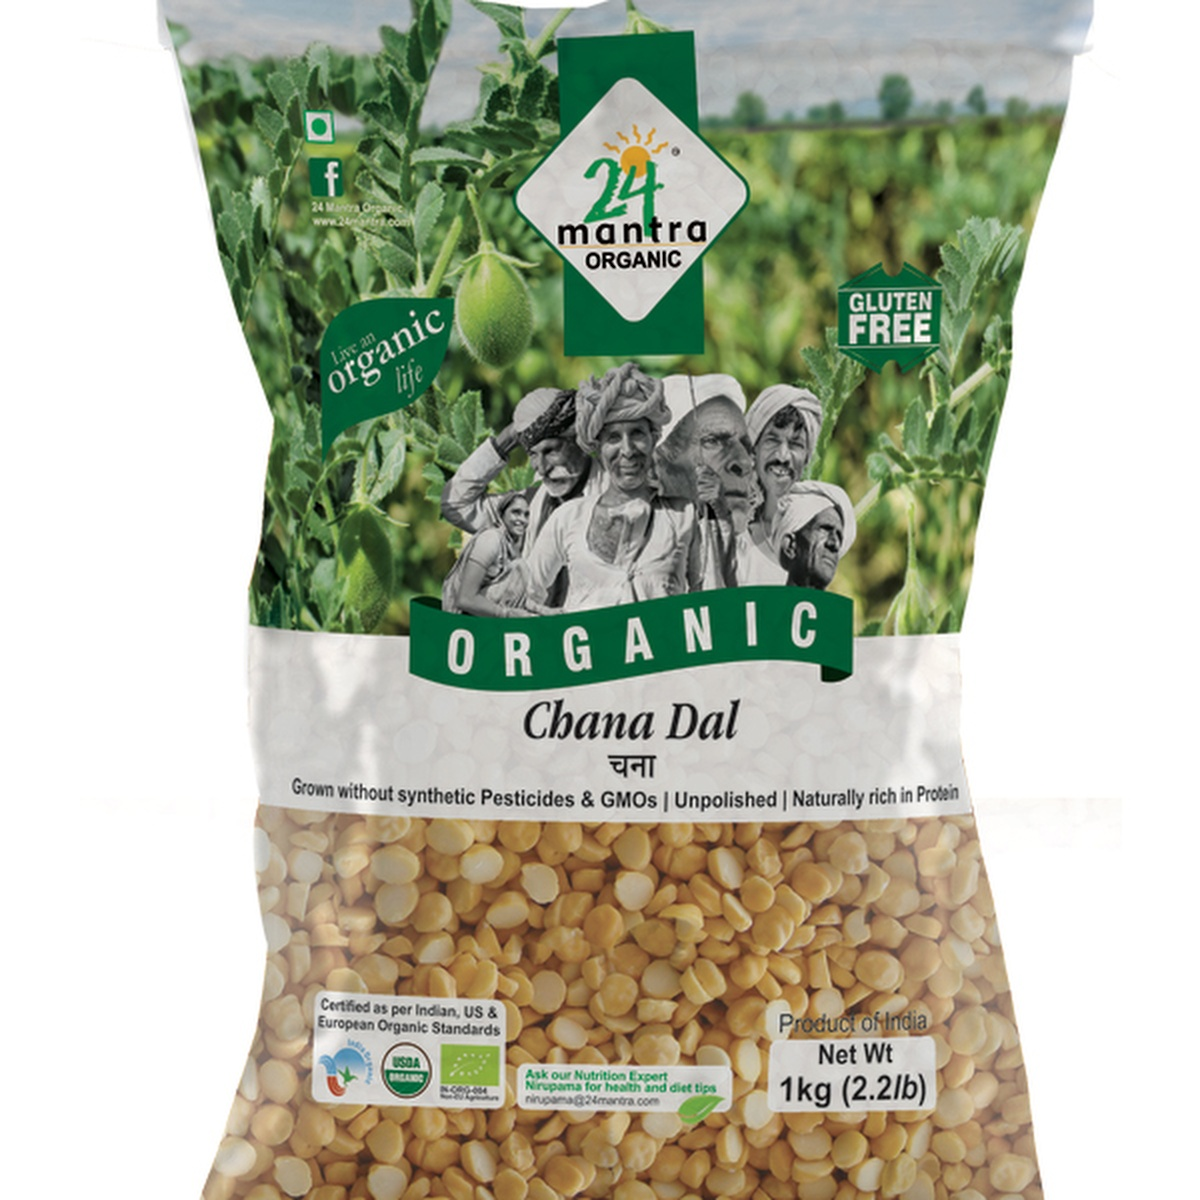 24 Mantra Chana dal 500 gm